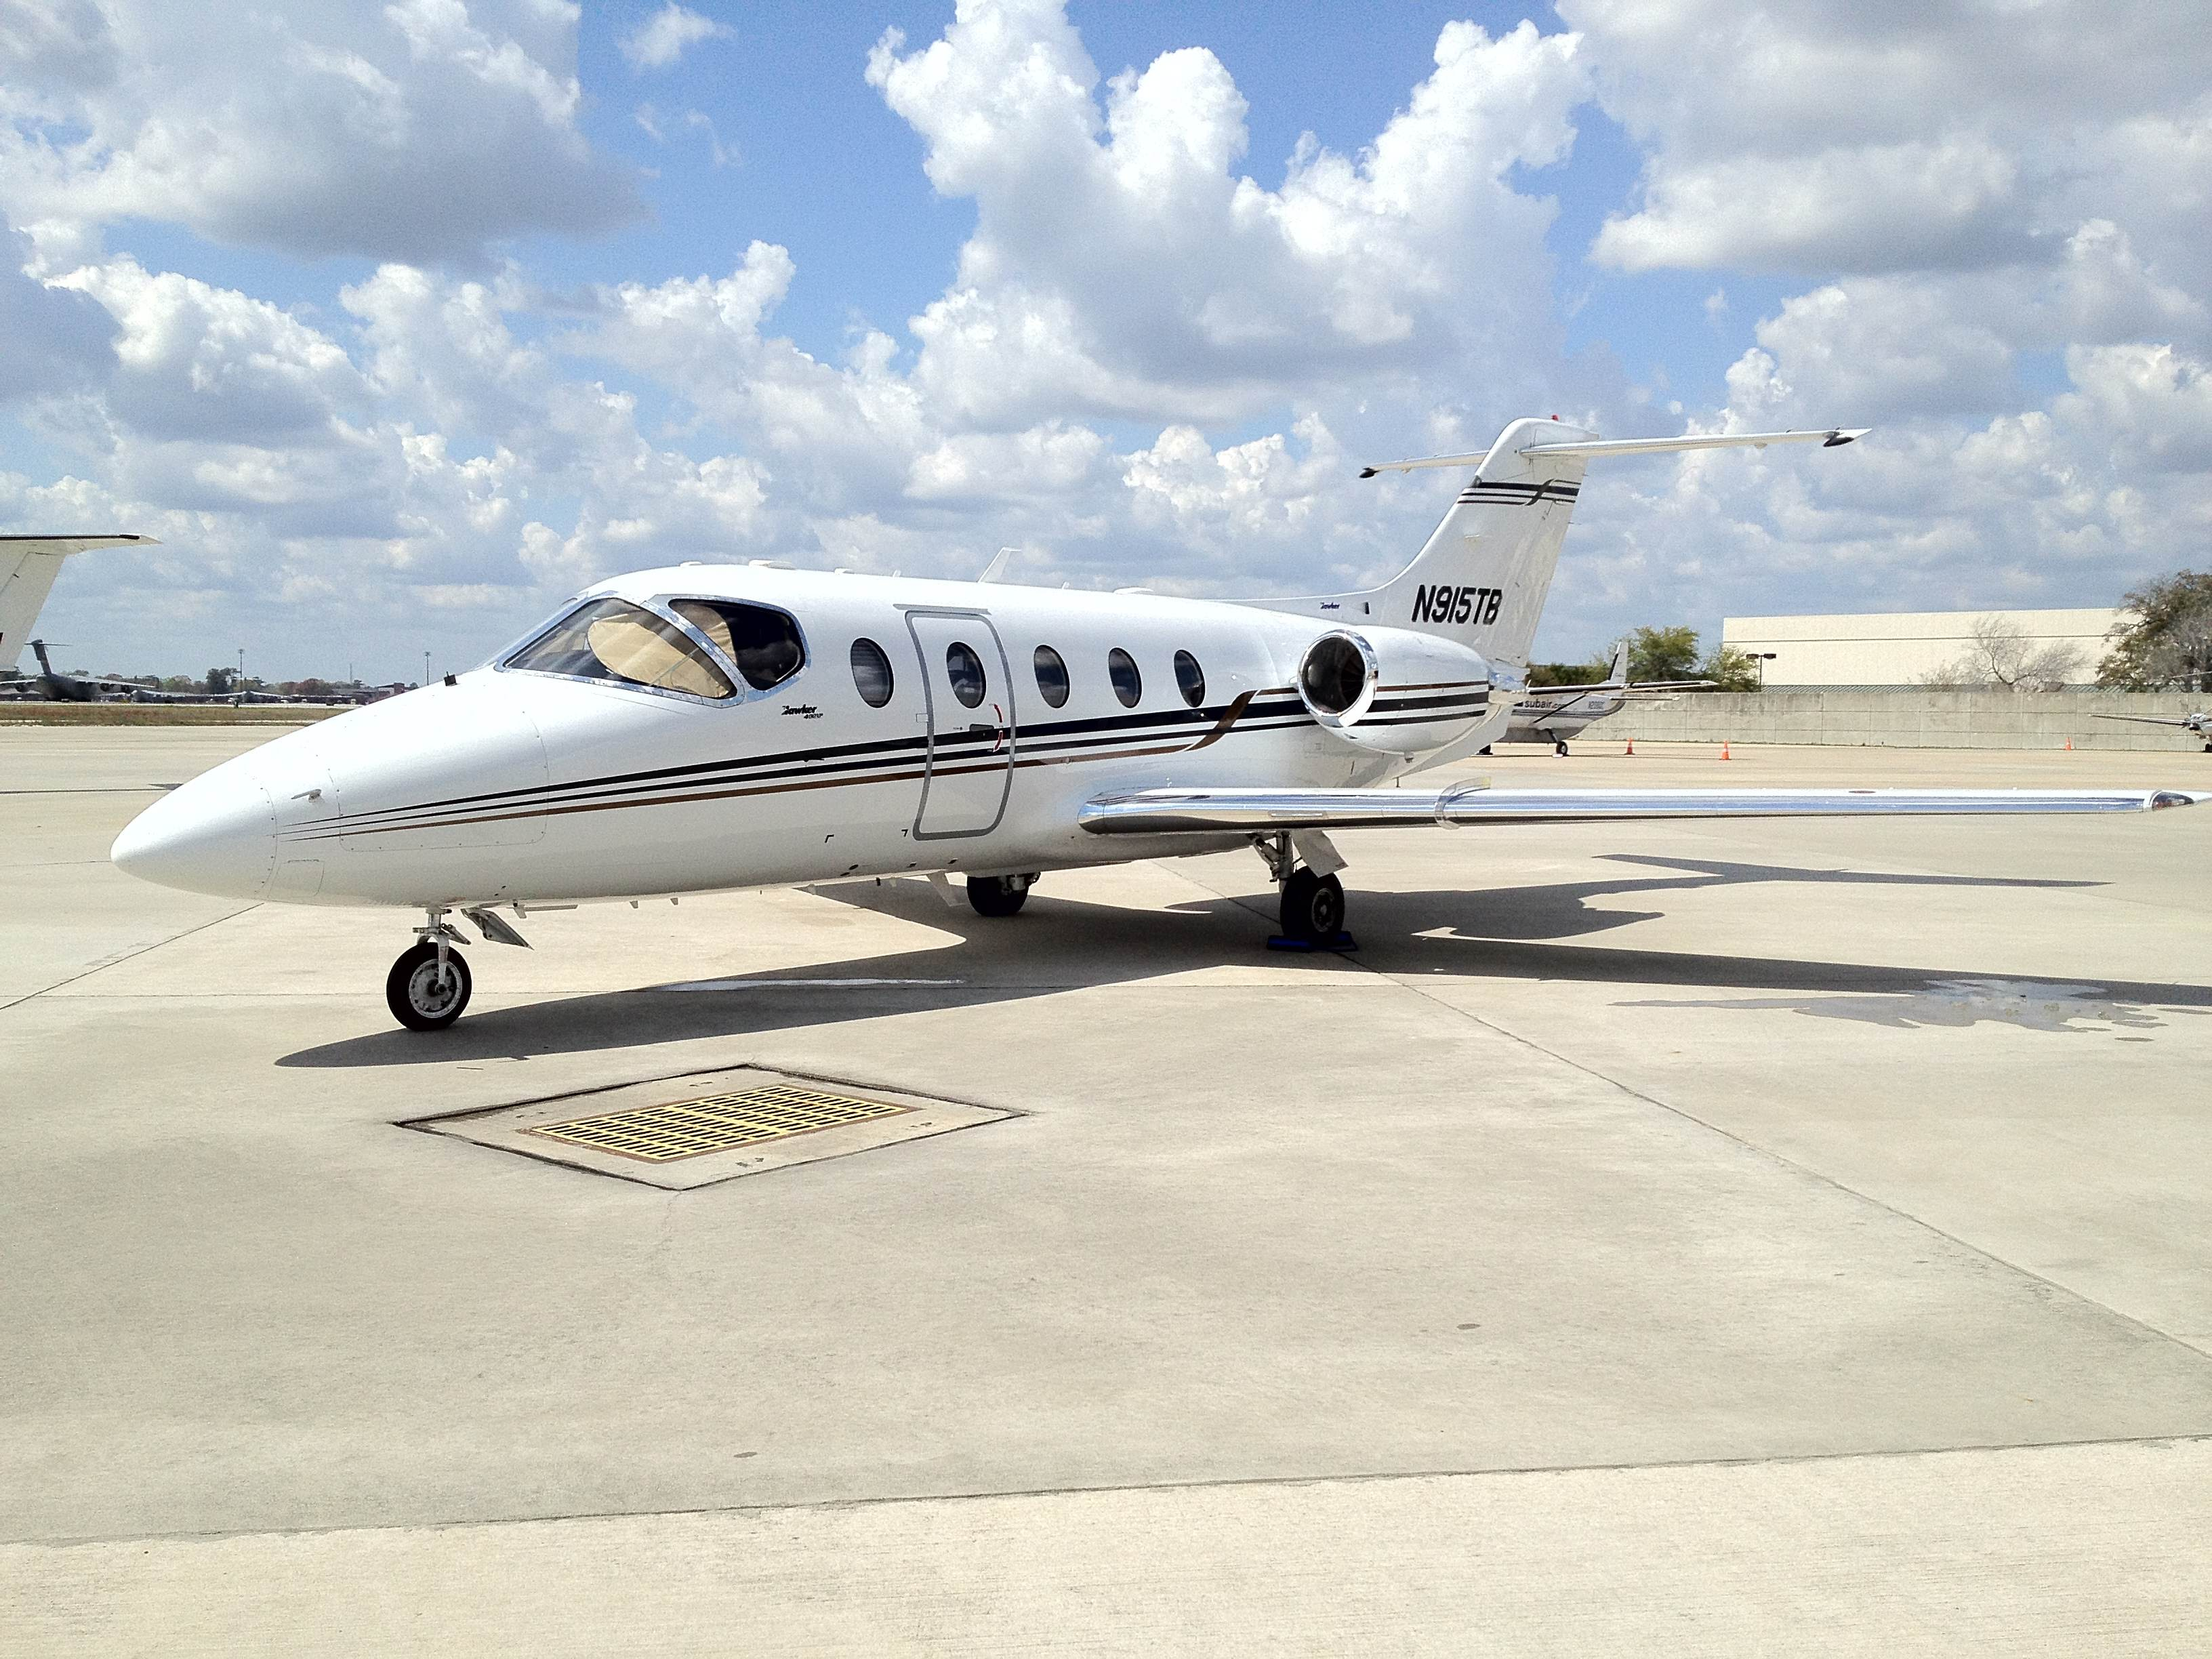 https://resources.globalair.com/aircraftforsale/images/ads/original/06_hawker400xp_e2.jpg